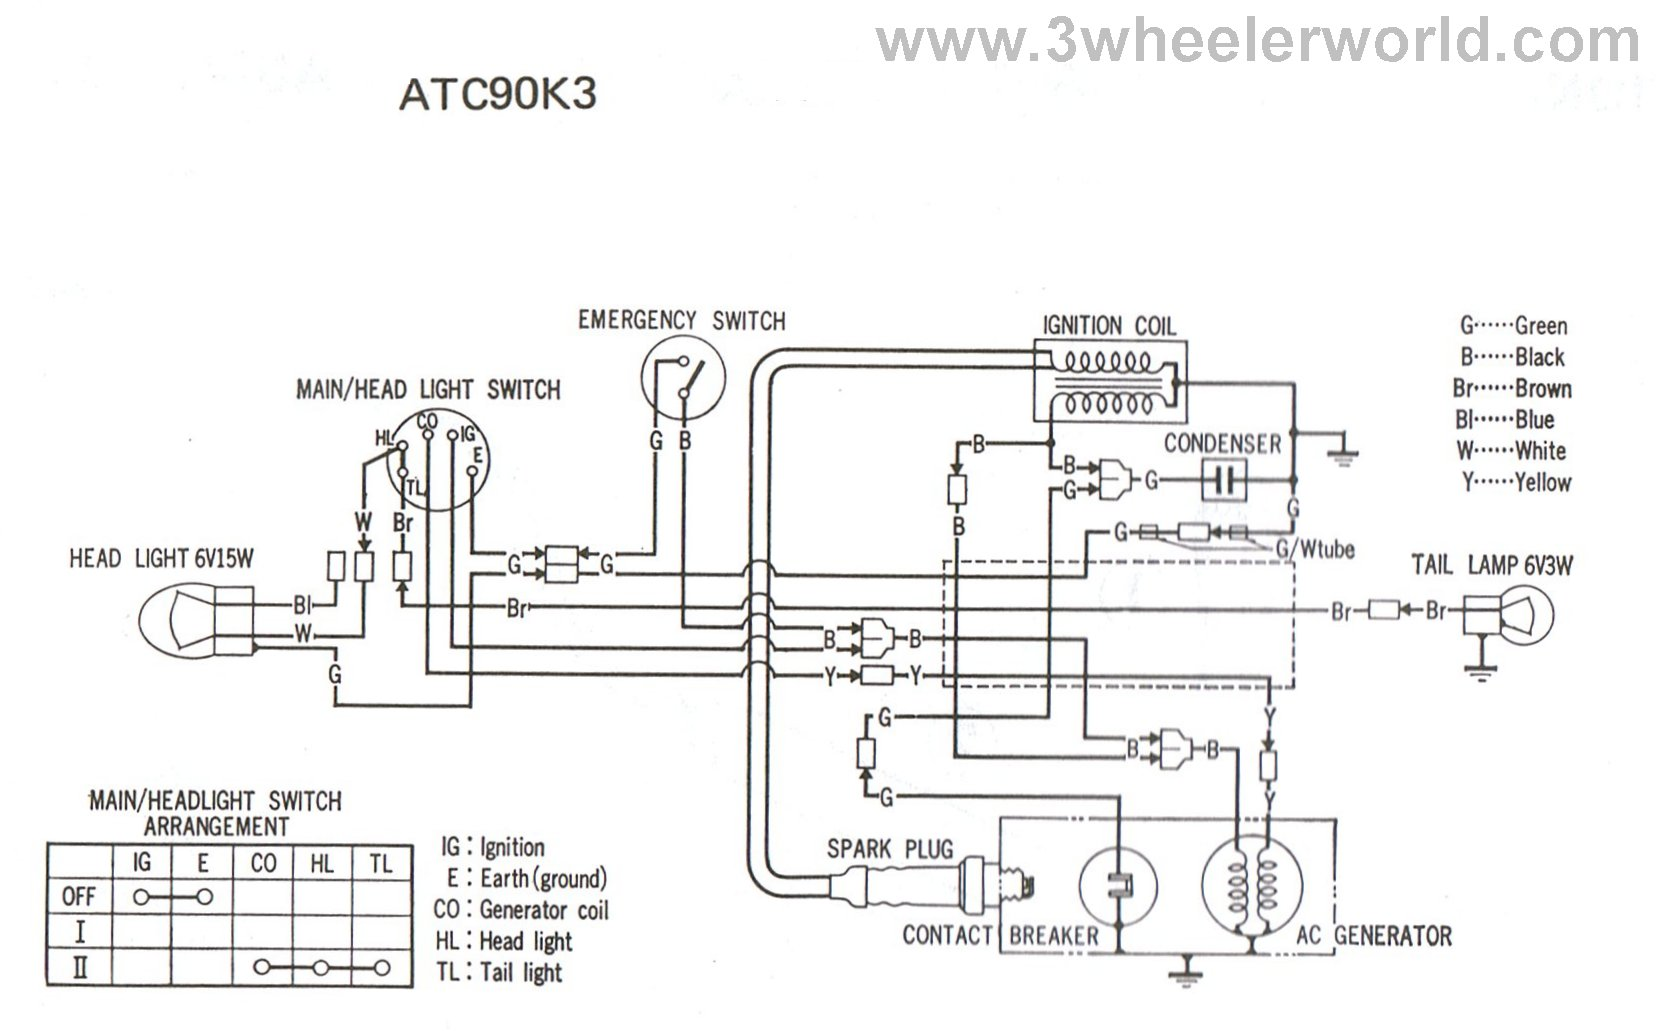 kawasaki wiring schematic kawasaki auto wiring diagram schematic polaris scrambler 90 wiring diagram a wiring diagram on kawasaki 90 wiring schematic